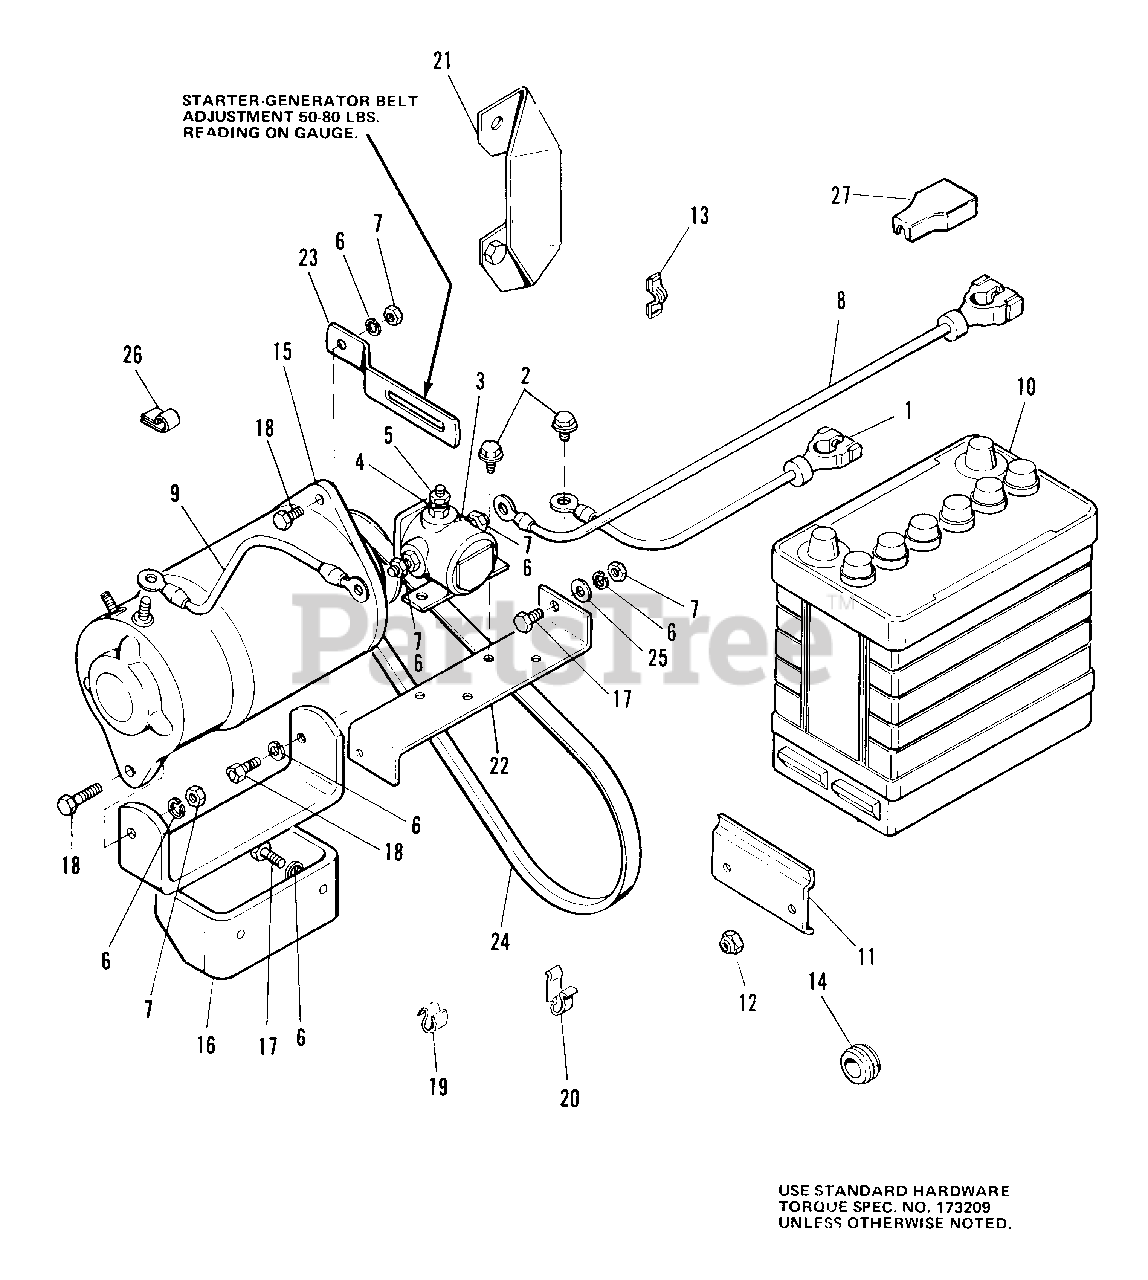 simplicity 7016 h (1690202) - simplicity garden tractor, 16hp electrical  group parts lookup with diagrams | partstree  partstree